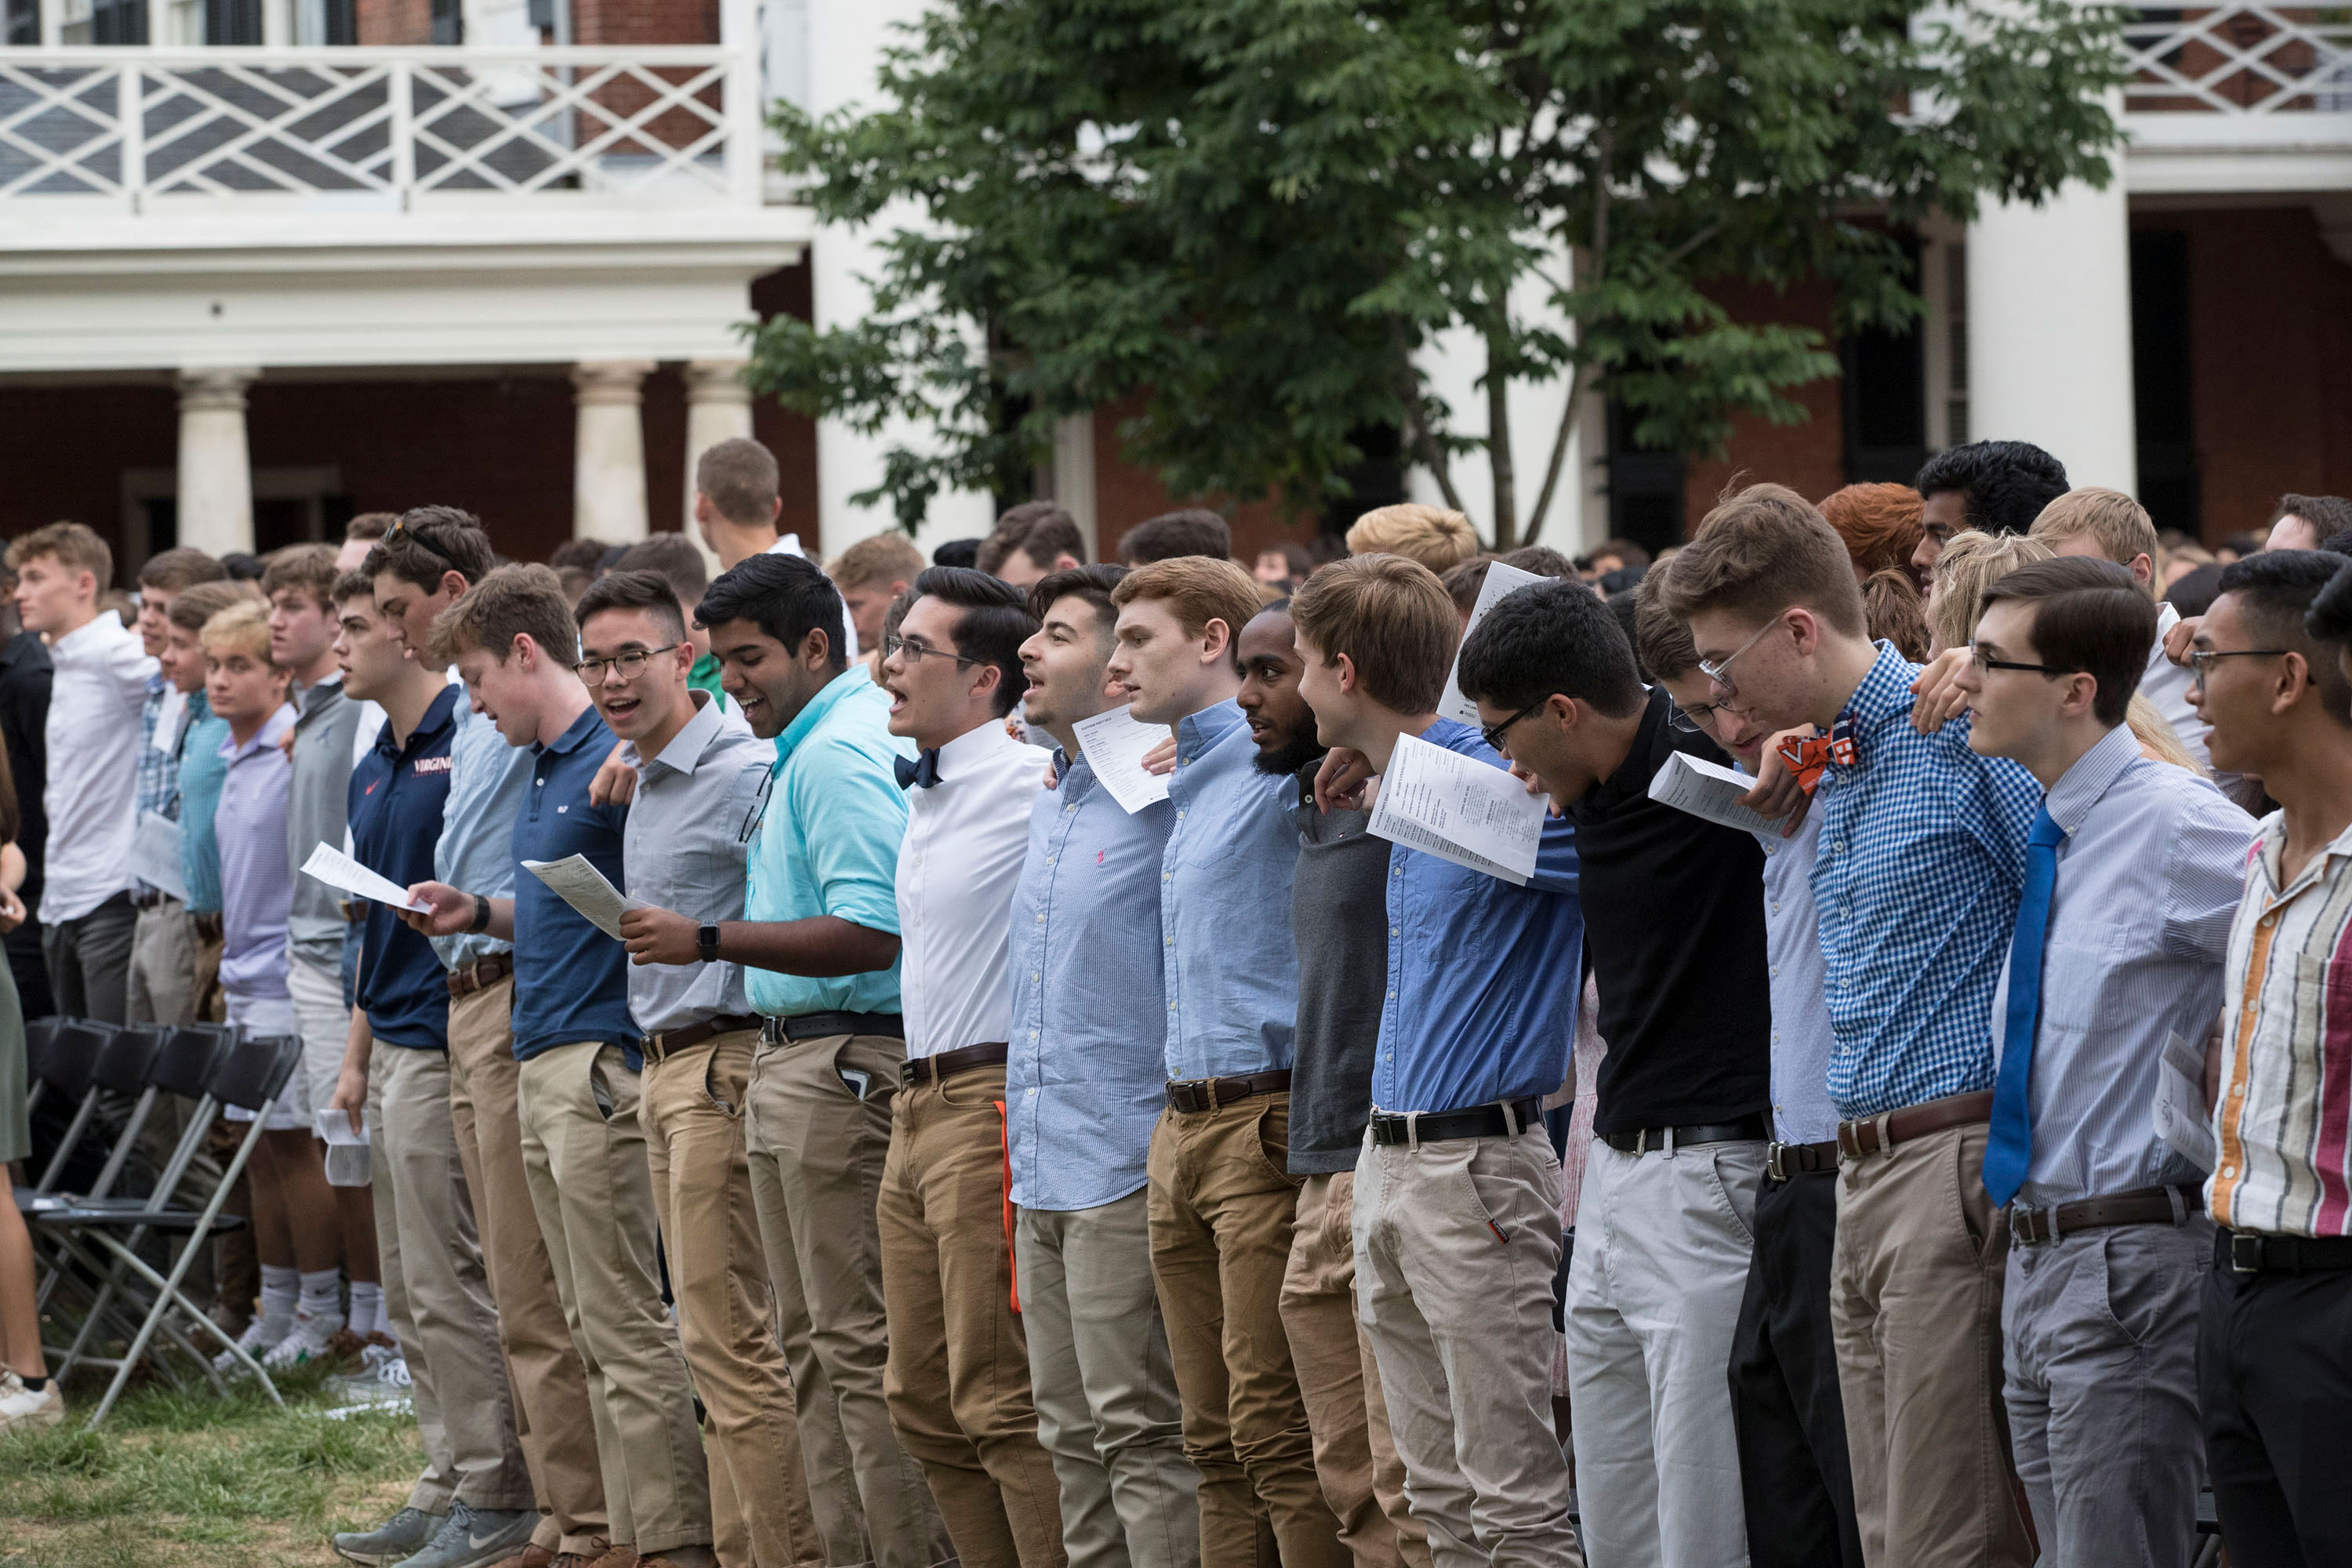 The Class of 2023 sang the Good Old Song together for the first time on Sunday at Opening Convocation.